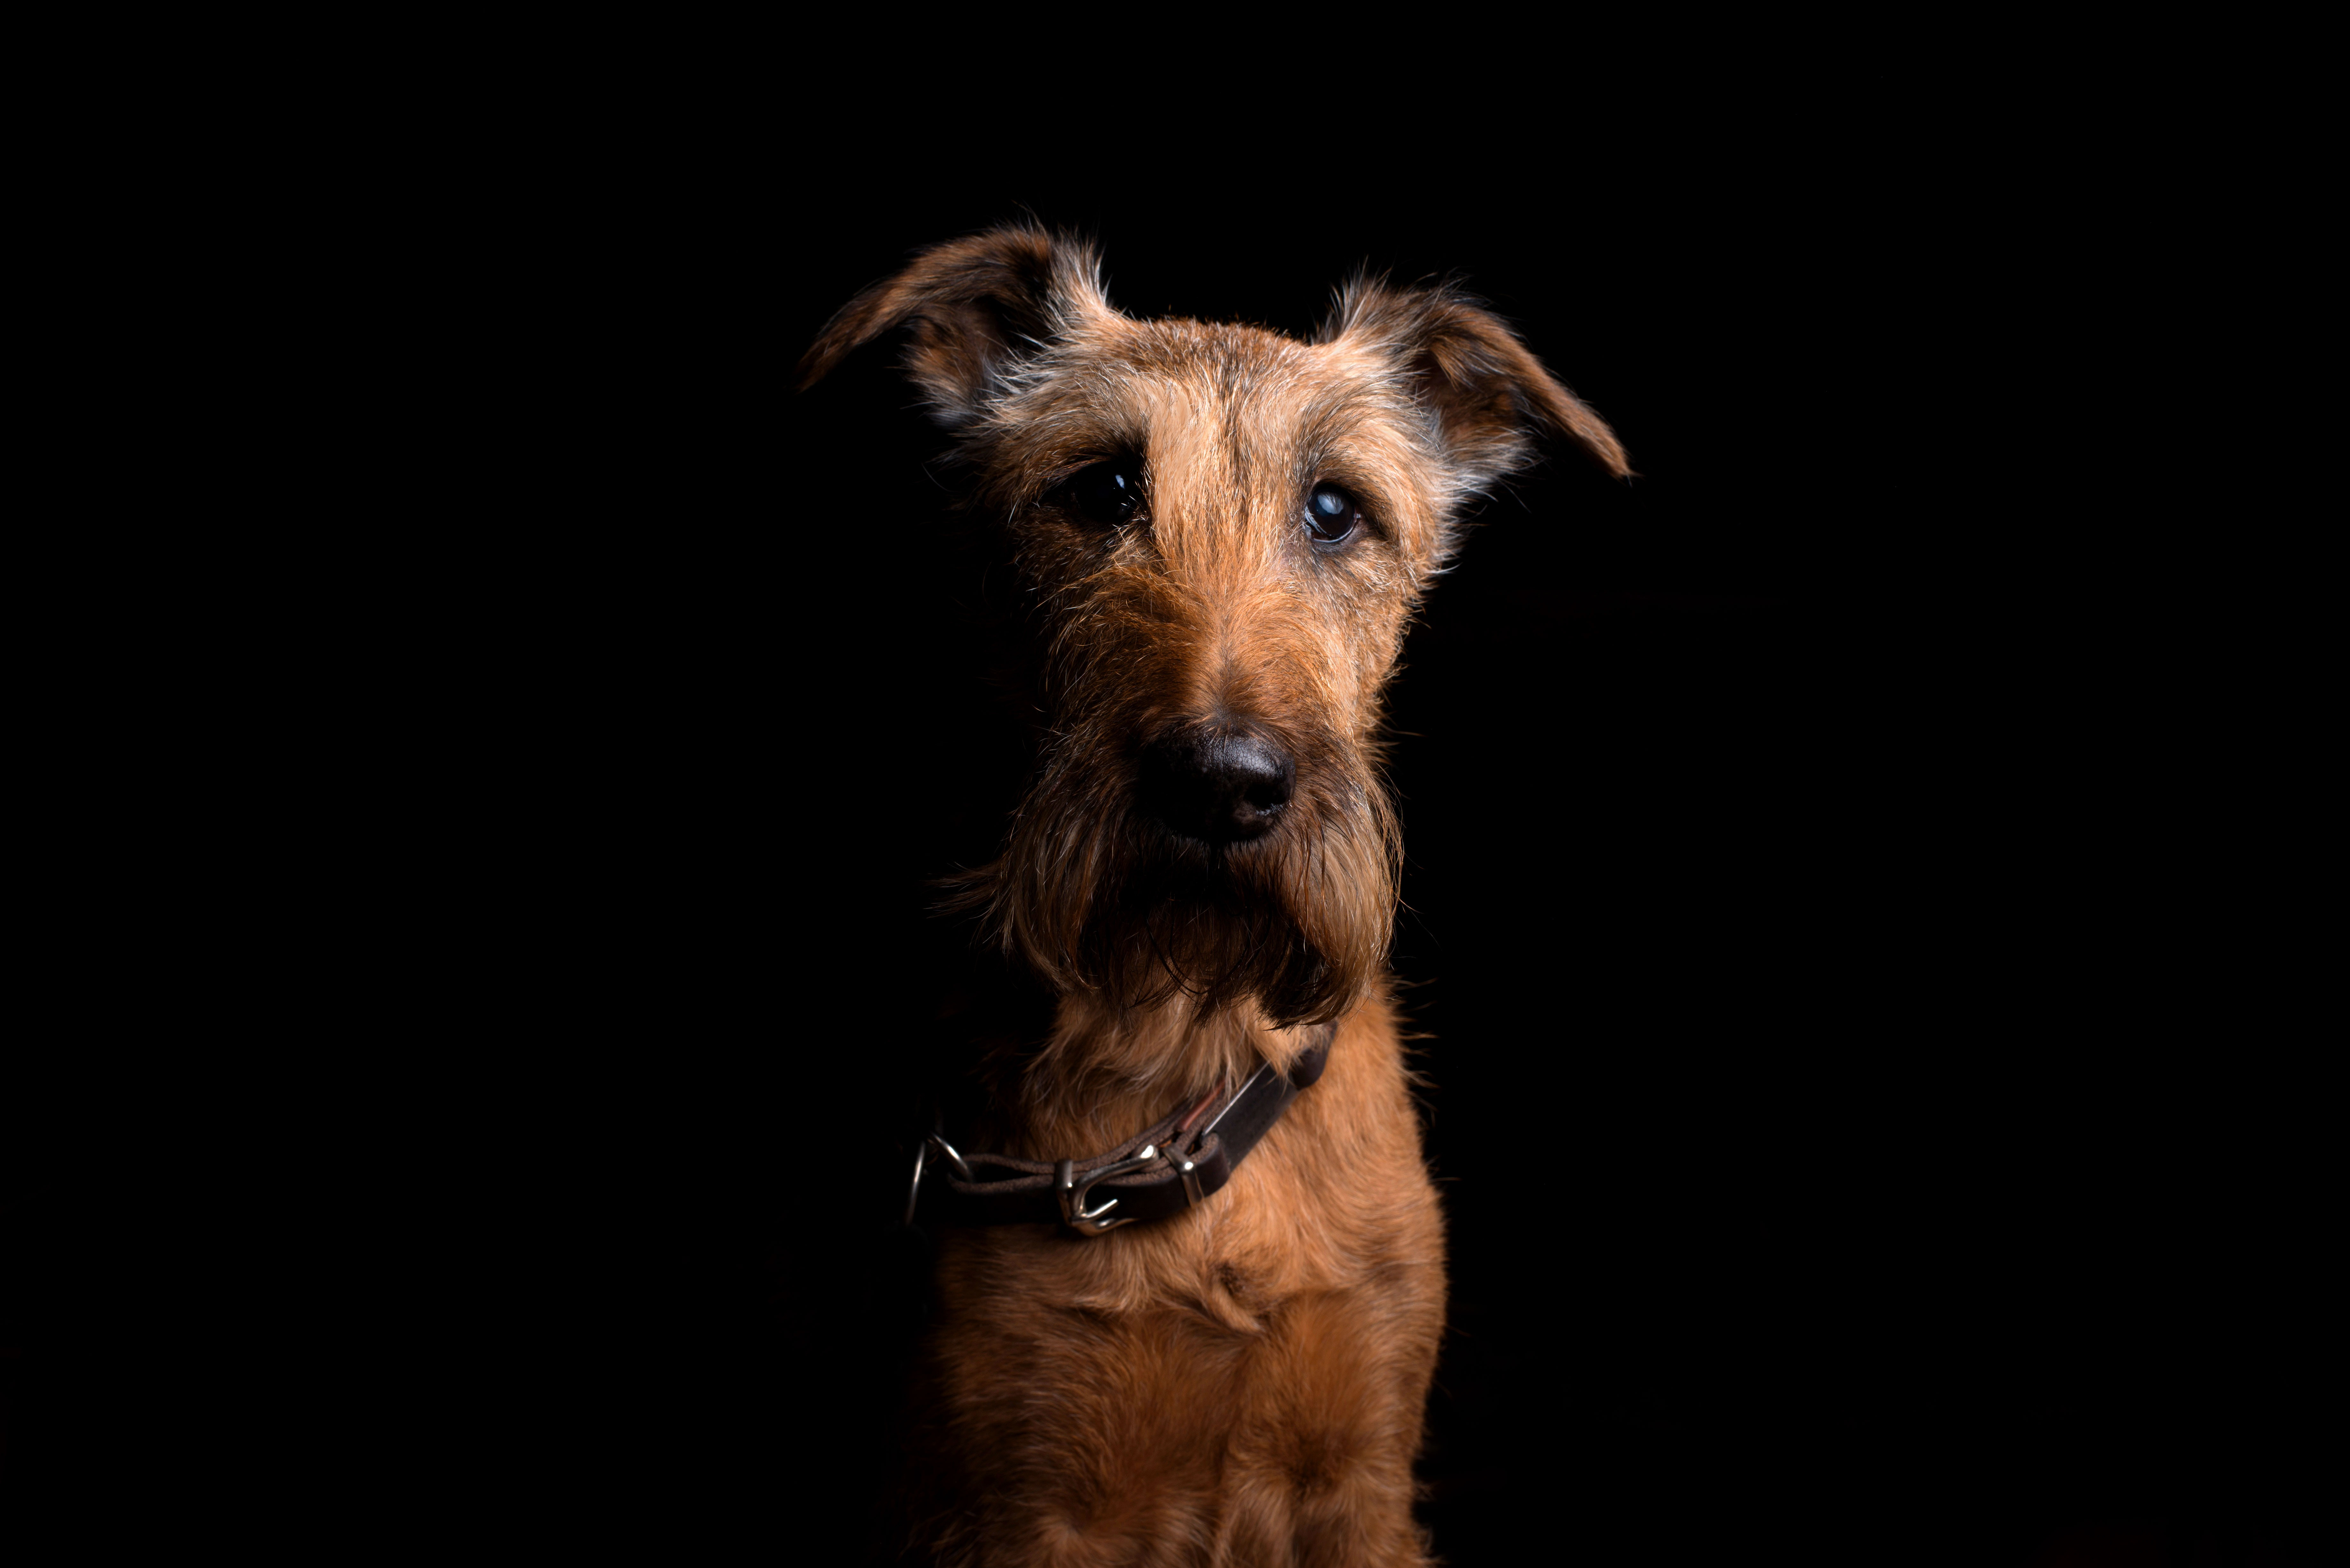 58908 Screensavers and Wallpapers Collar for phone. Download Animals, Dog, Muzzle, Sight, Opinion, Collar, Irish Terrier pictures for free